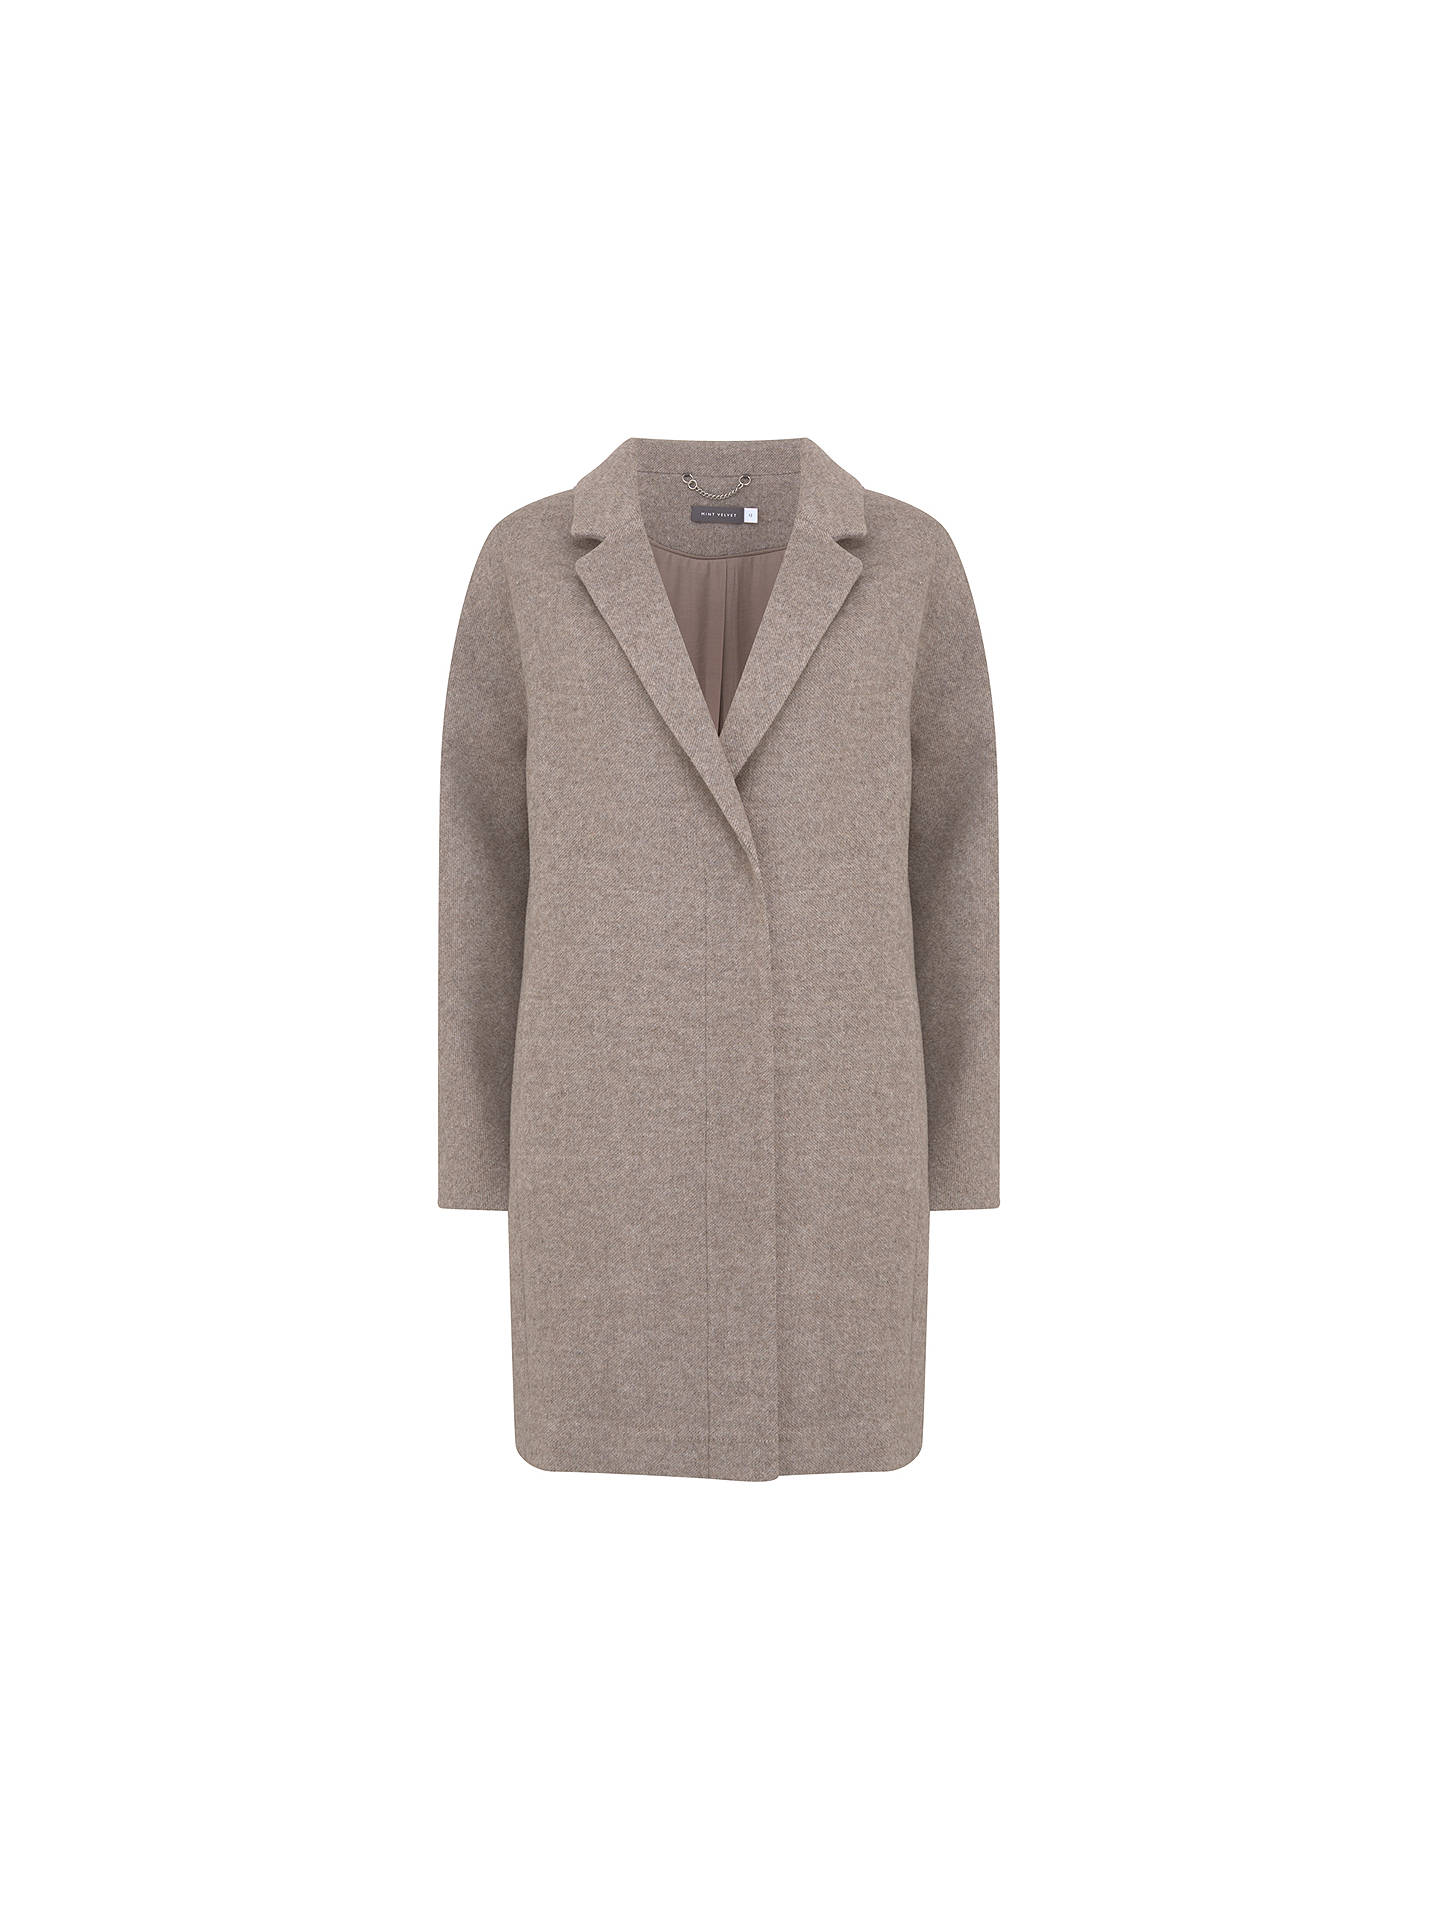 BuyMint Velvet Easy Coat, Oatmeal, 6 Online at johnlewis.com